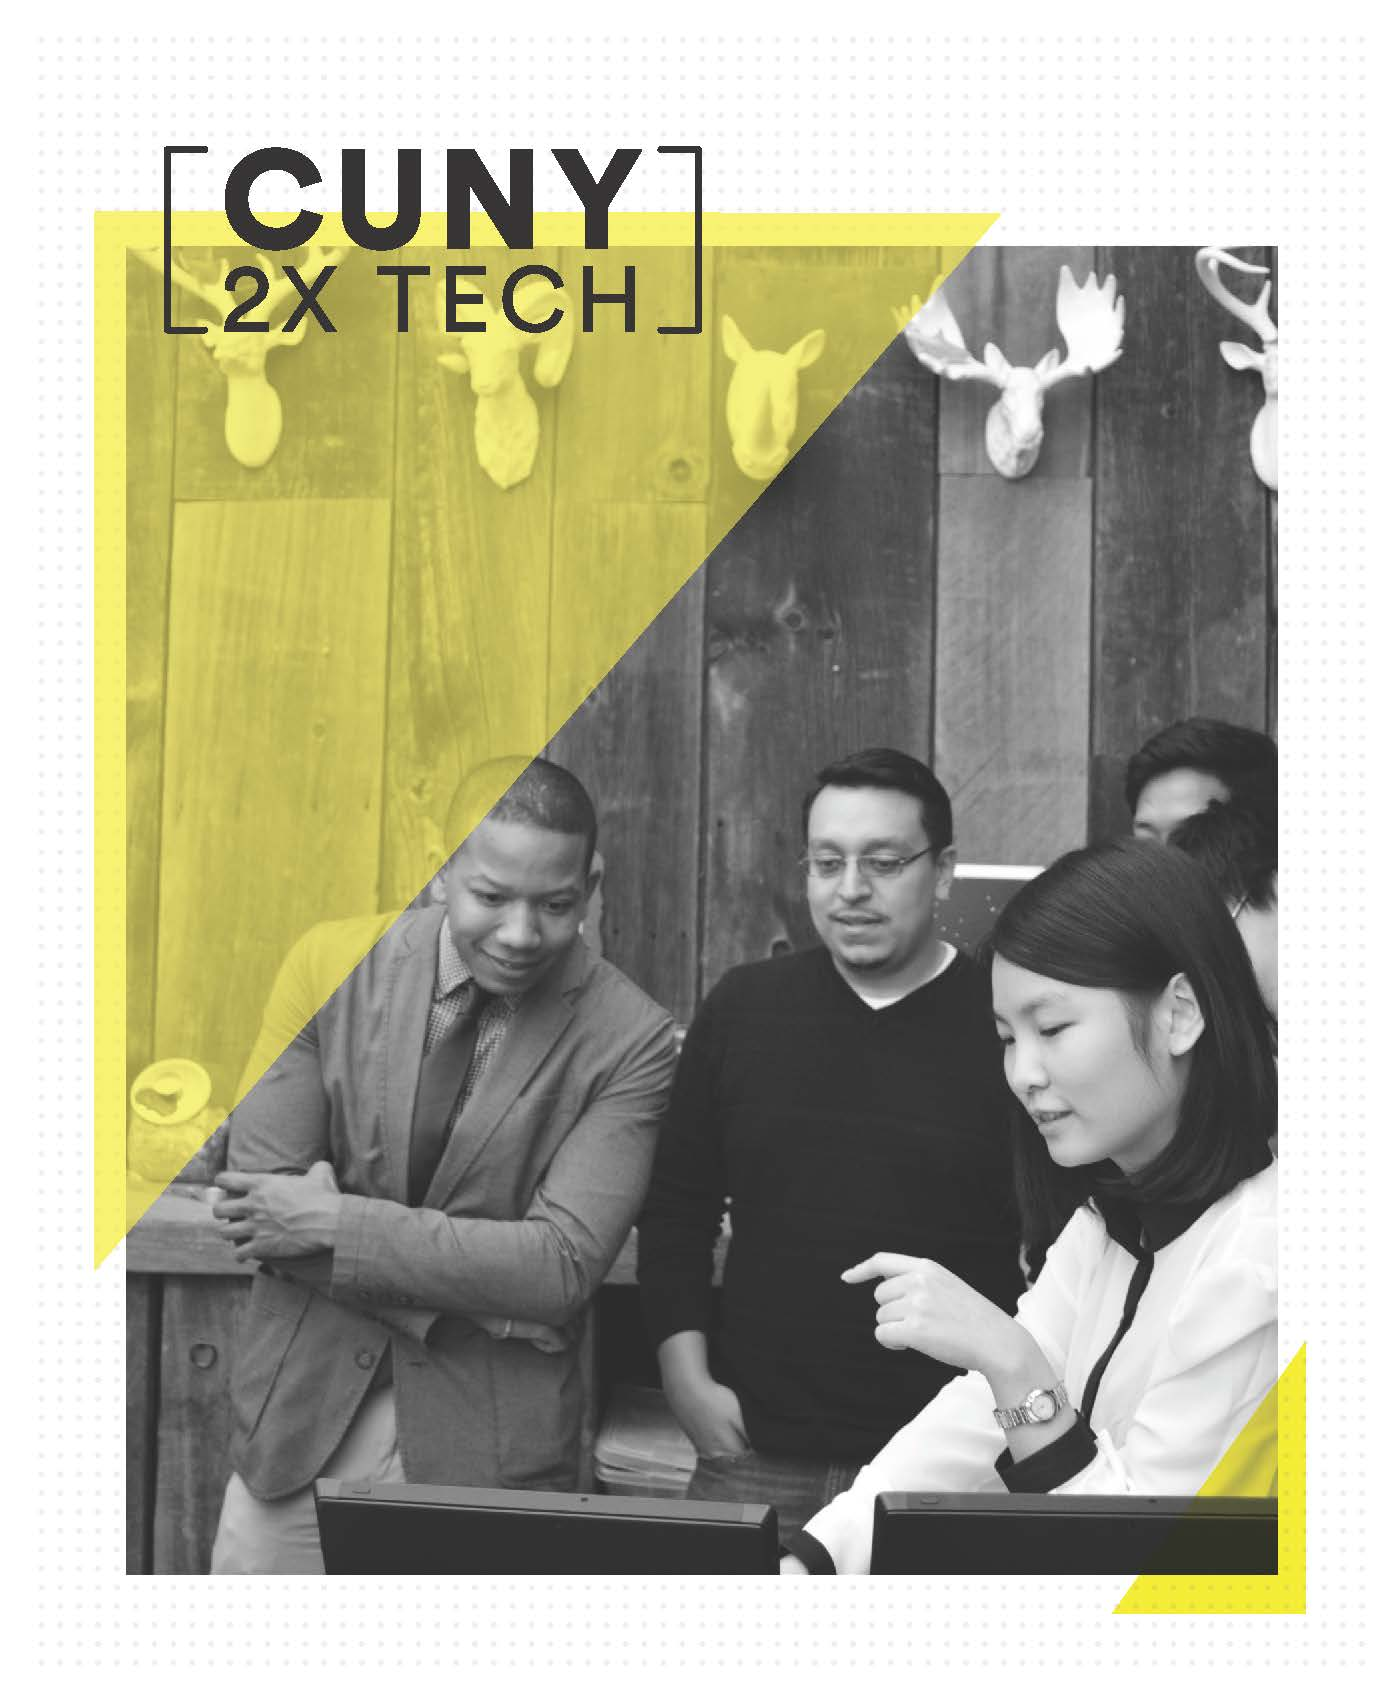 CUNY 2x Tech - Learn about the $20 million initiative to double the number of CUNY students graduating annually with a tech-related bachelor's degree prepared to launch careers in the NYC tech ecosystem.